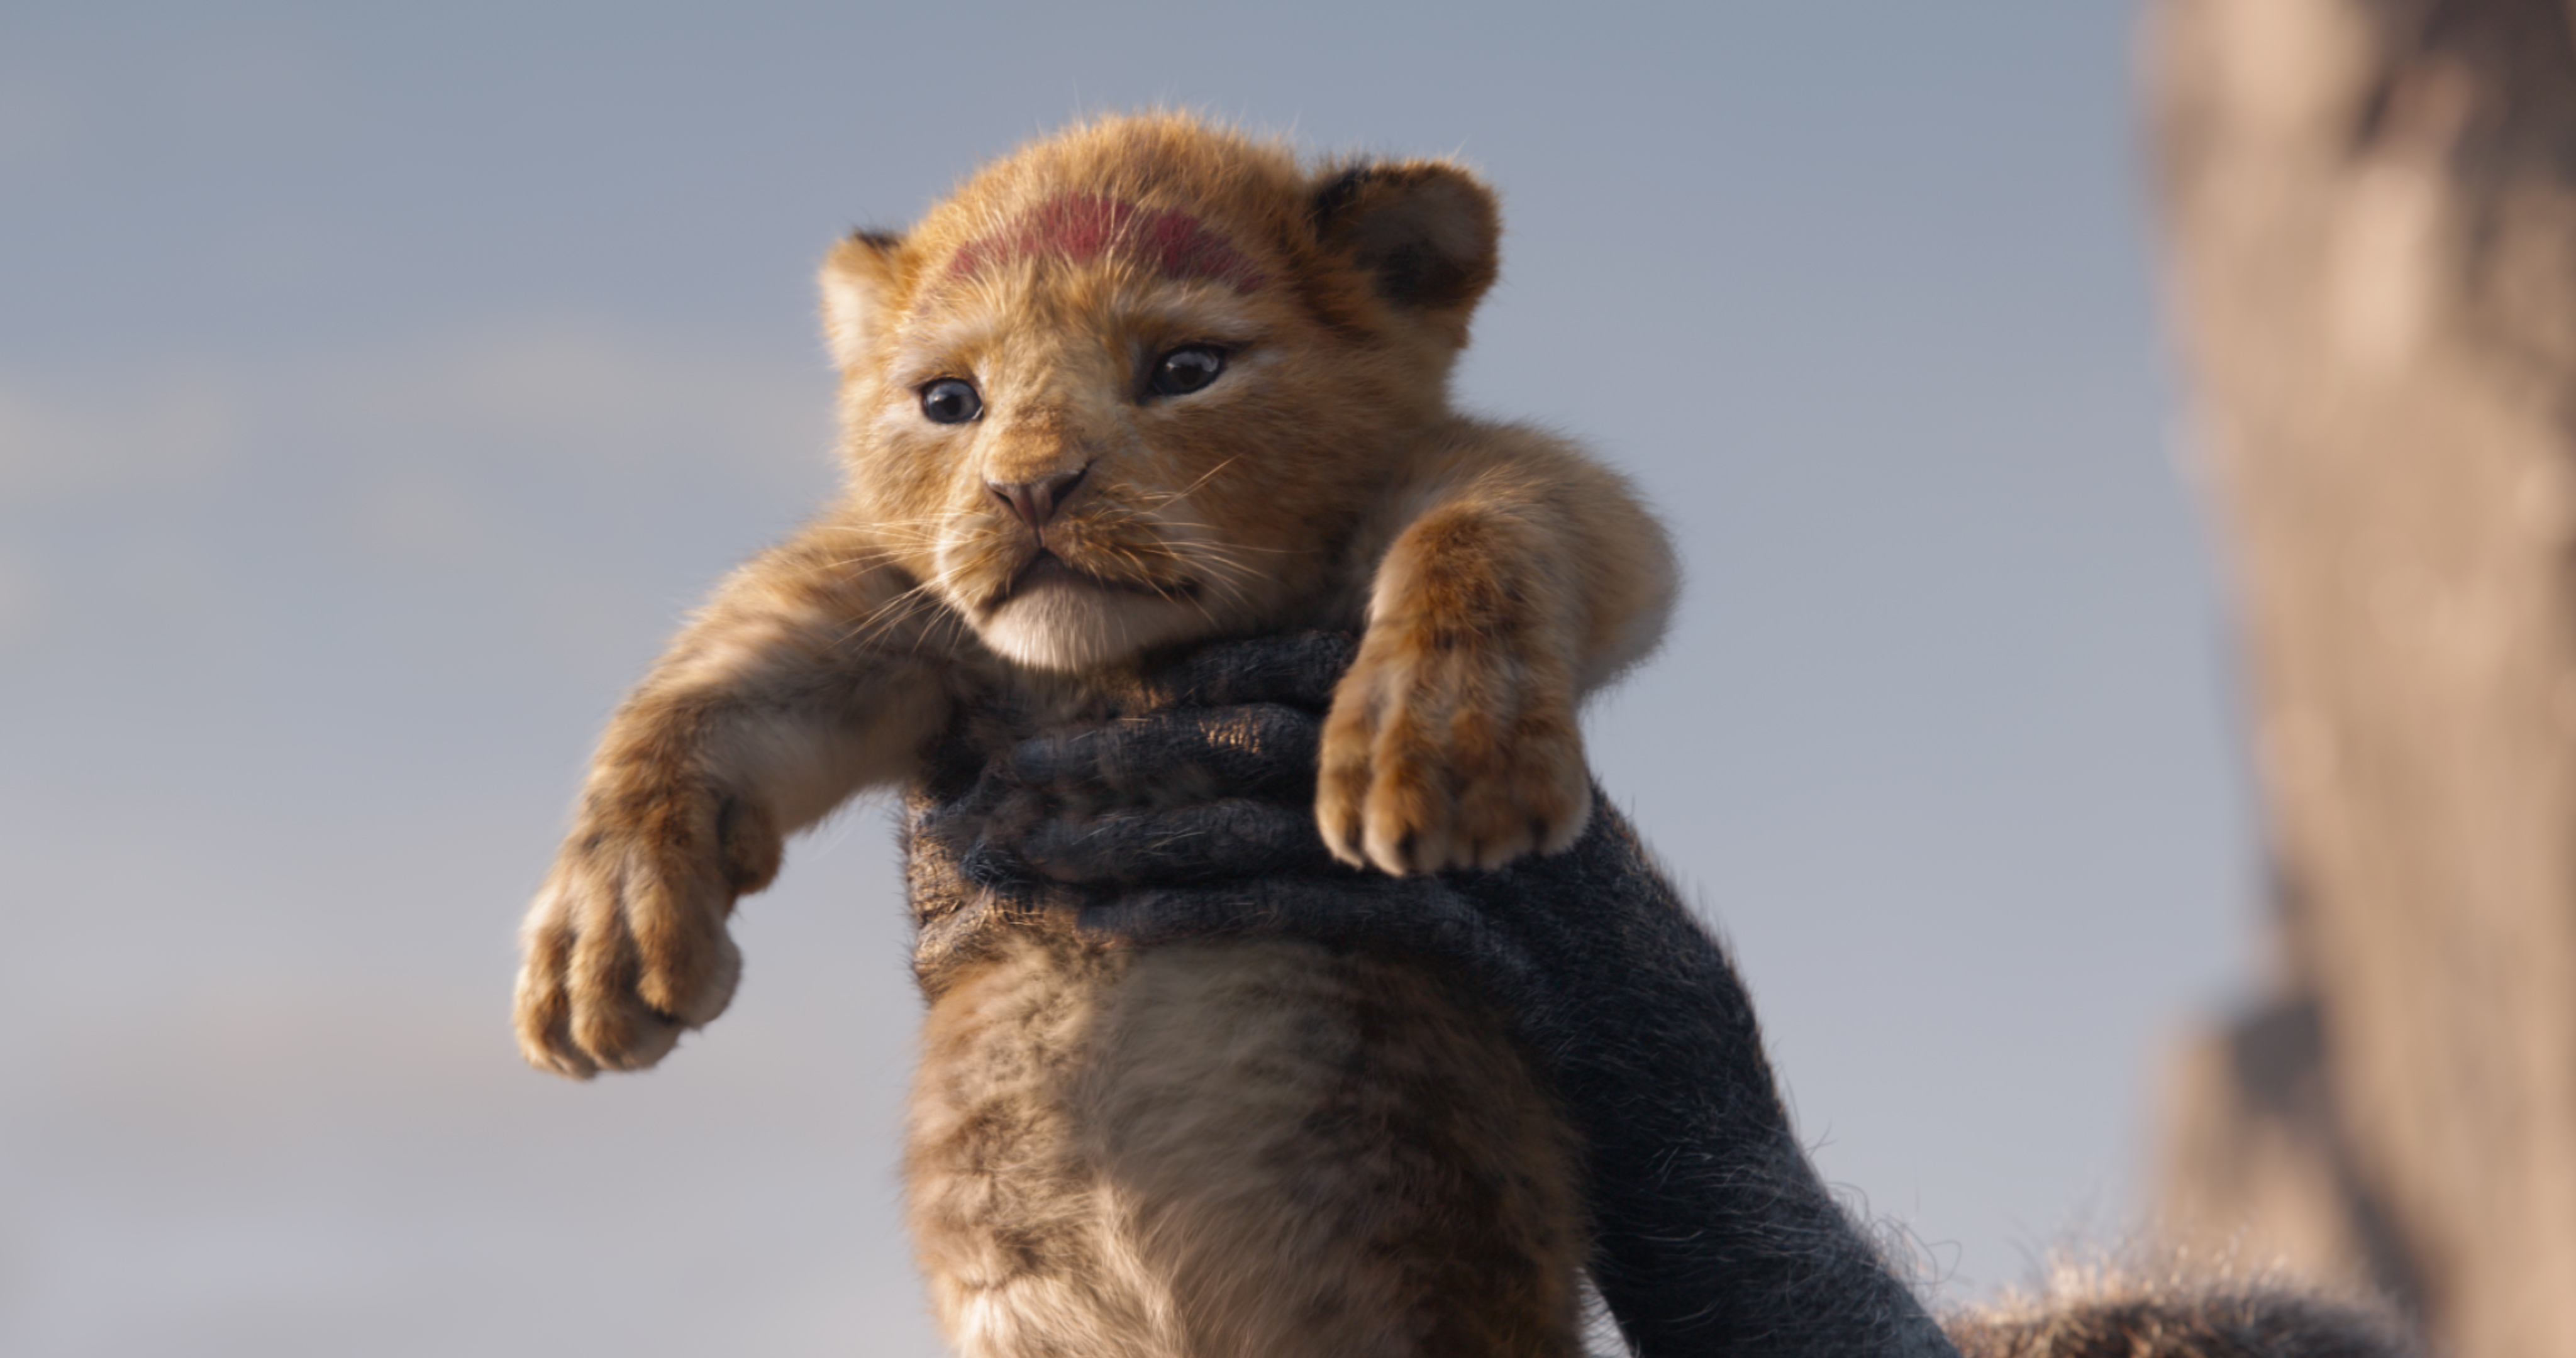 Lion King 2019 vs. the original: what's better and worse about the remake